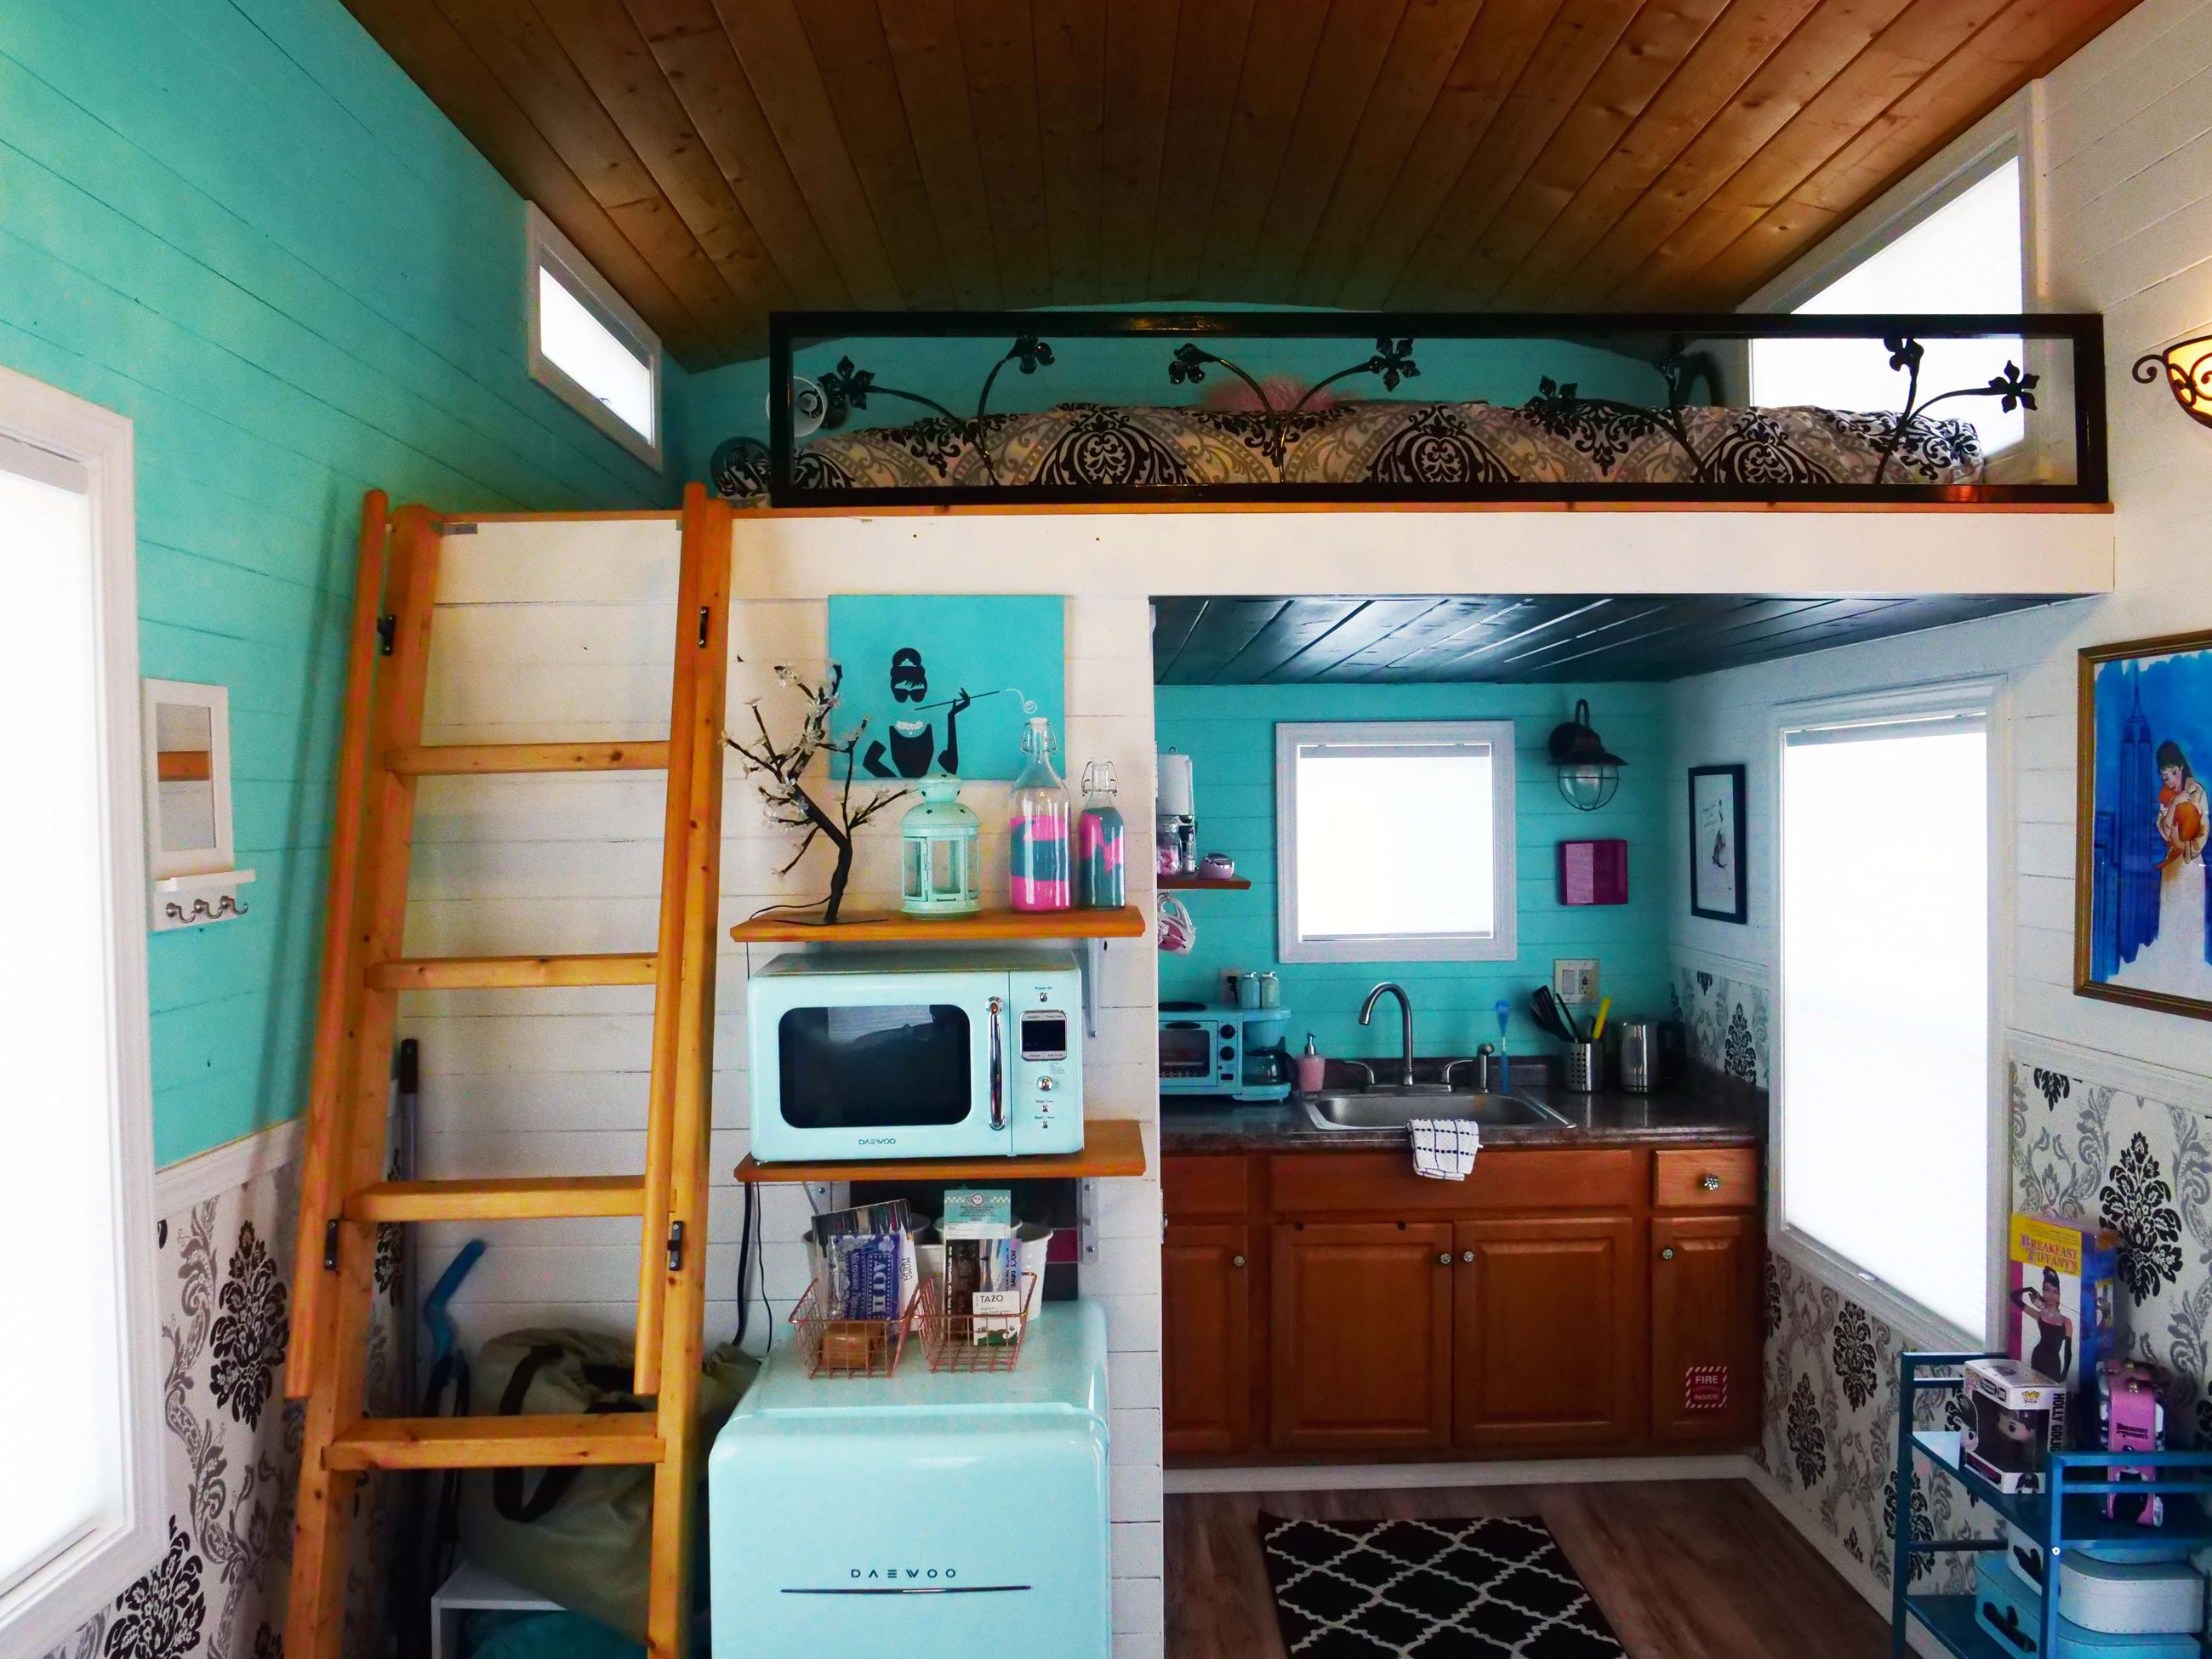 Kitchen and Bed at Audrey Hepburn themed tiny home at Docs Drive-In Theatre